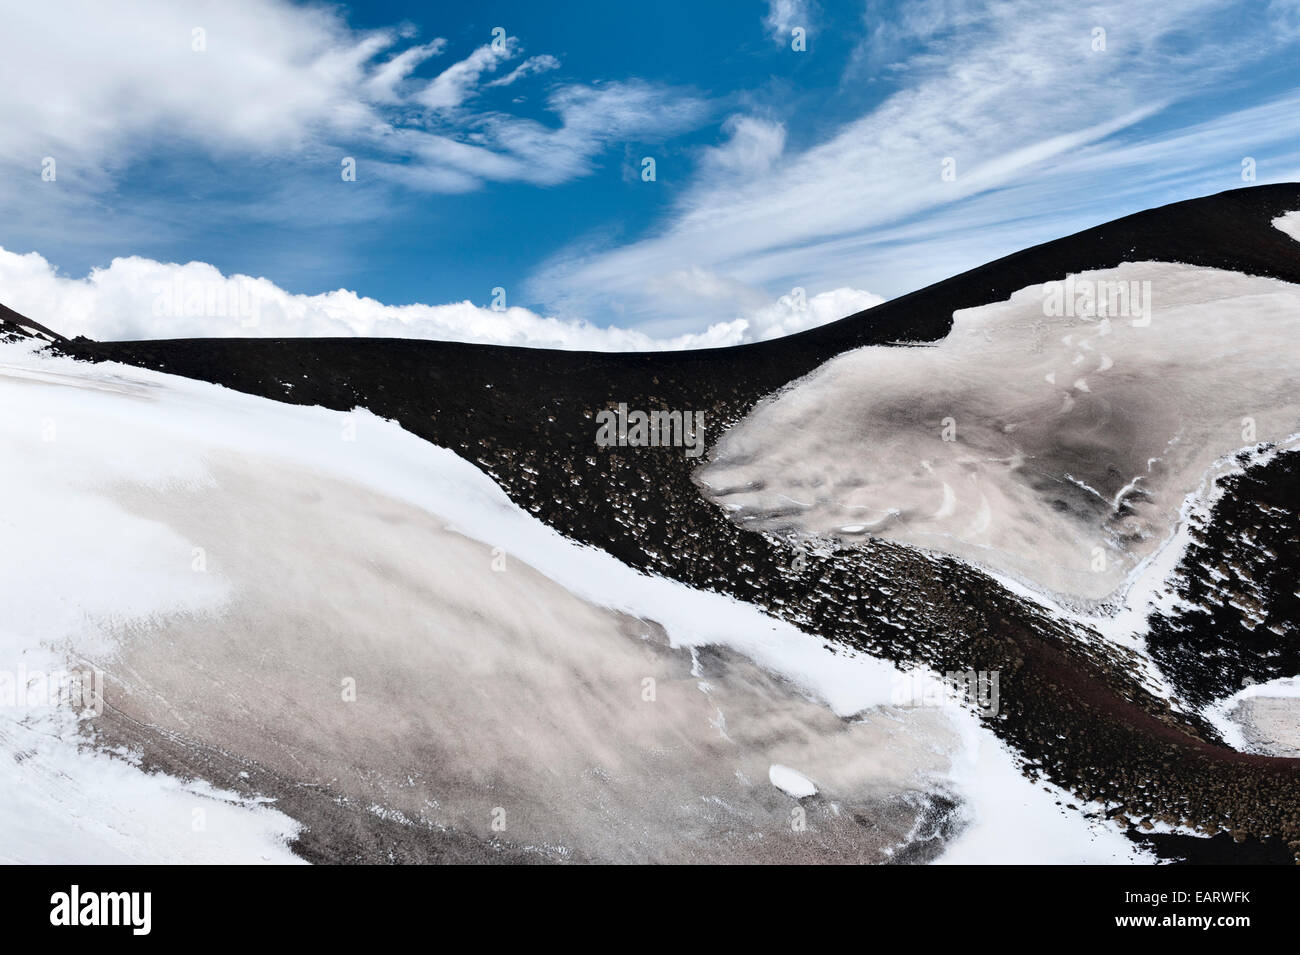 Mount Etna, Sicily, Italy. Snow and old lava flows near the summit of this active volcano - Stock Image